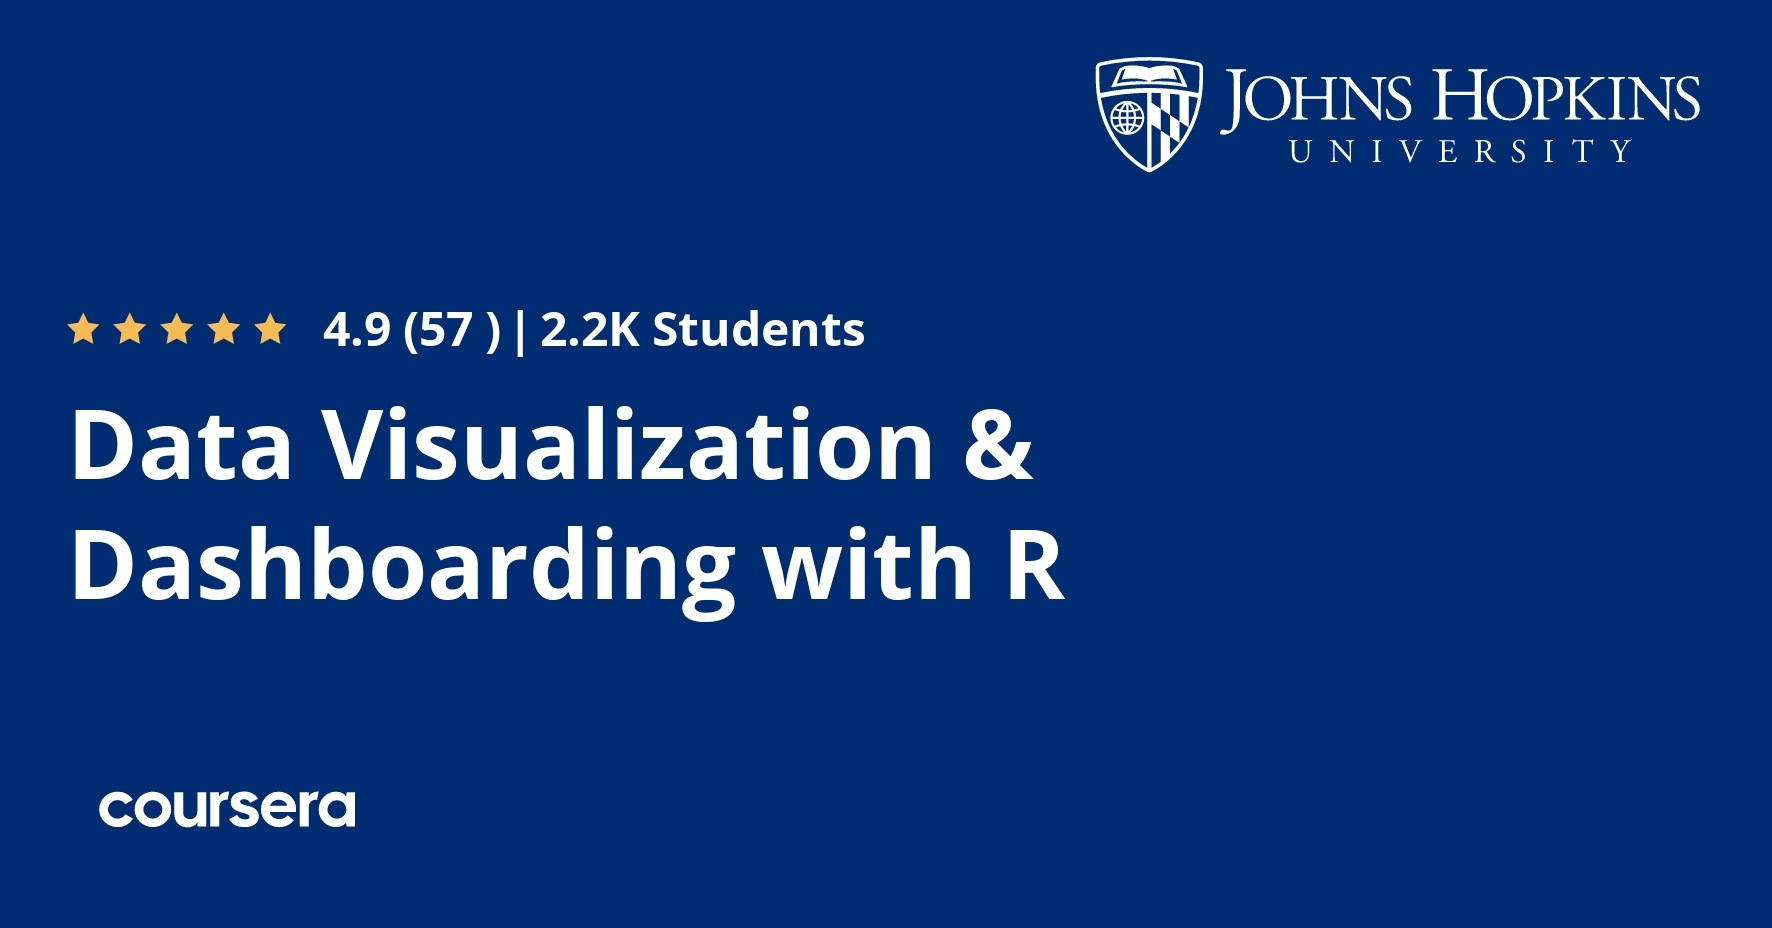 Data Visualization & Dashboarding with R Specialization